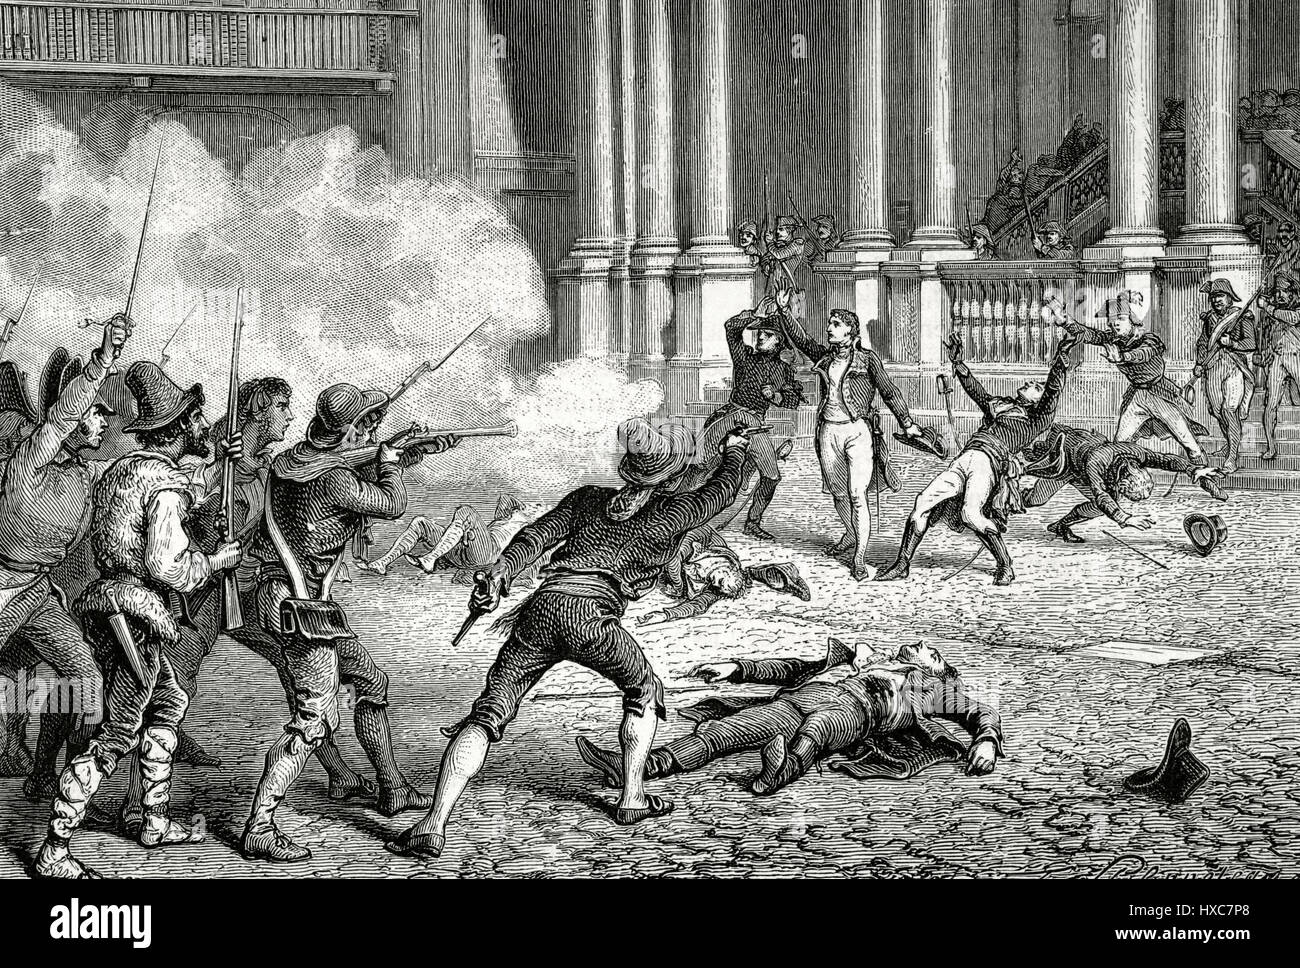 The French Revolutionary Wars (1792-1802). Italian campaign. Rome. Assassination of the French general Leonardo - Stock Image